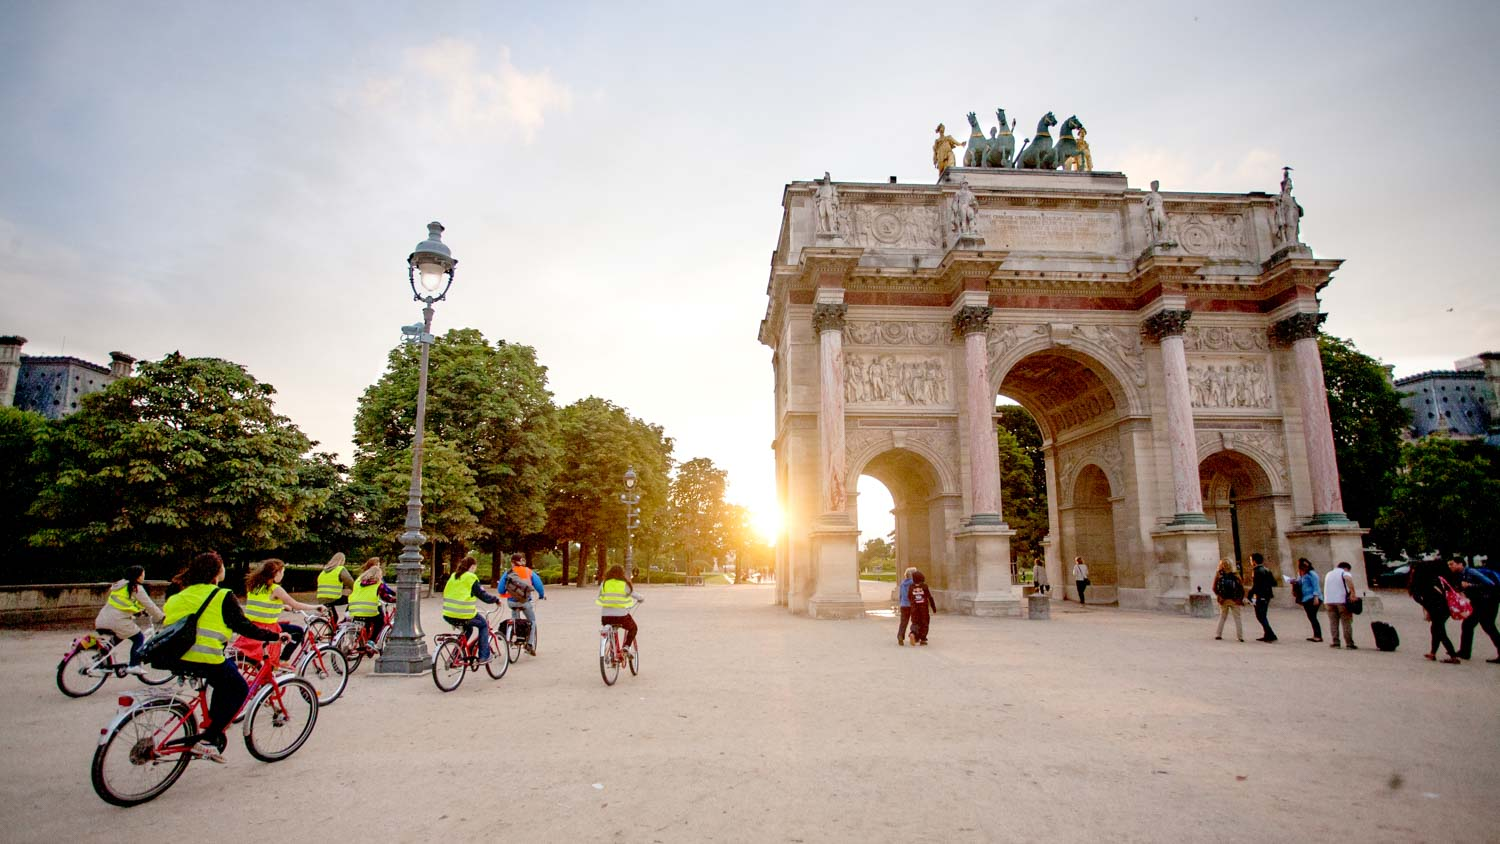 It's the second Arc de Triomphe in Paris